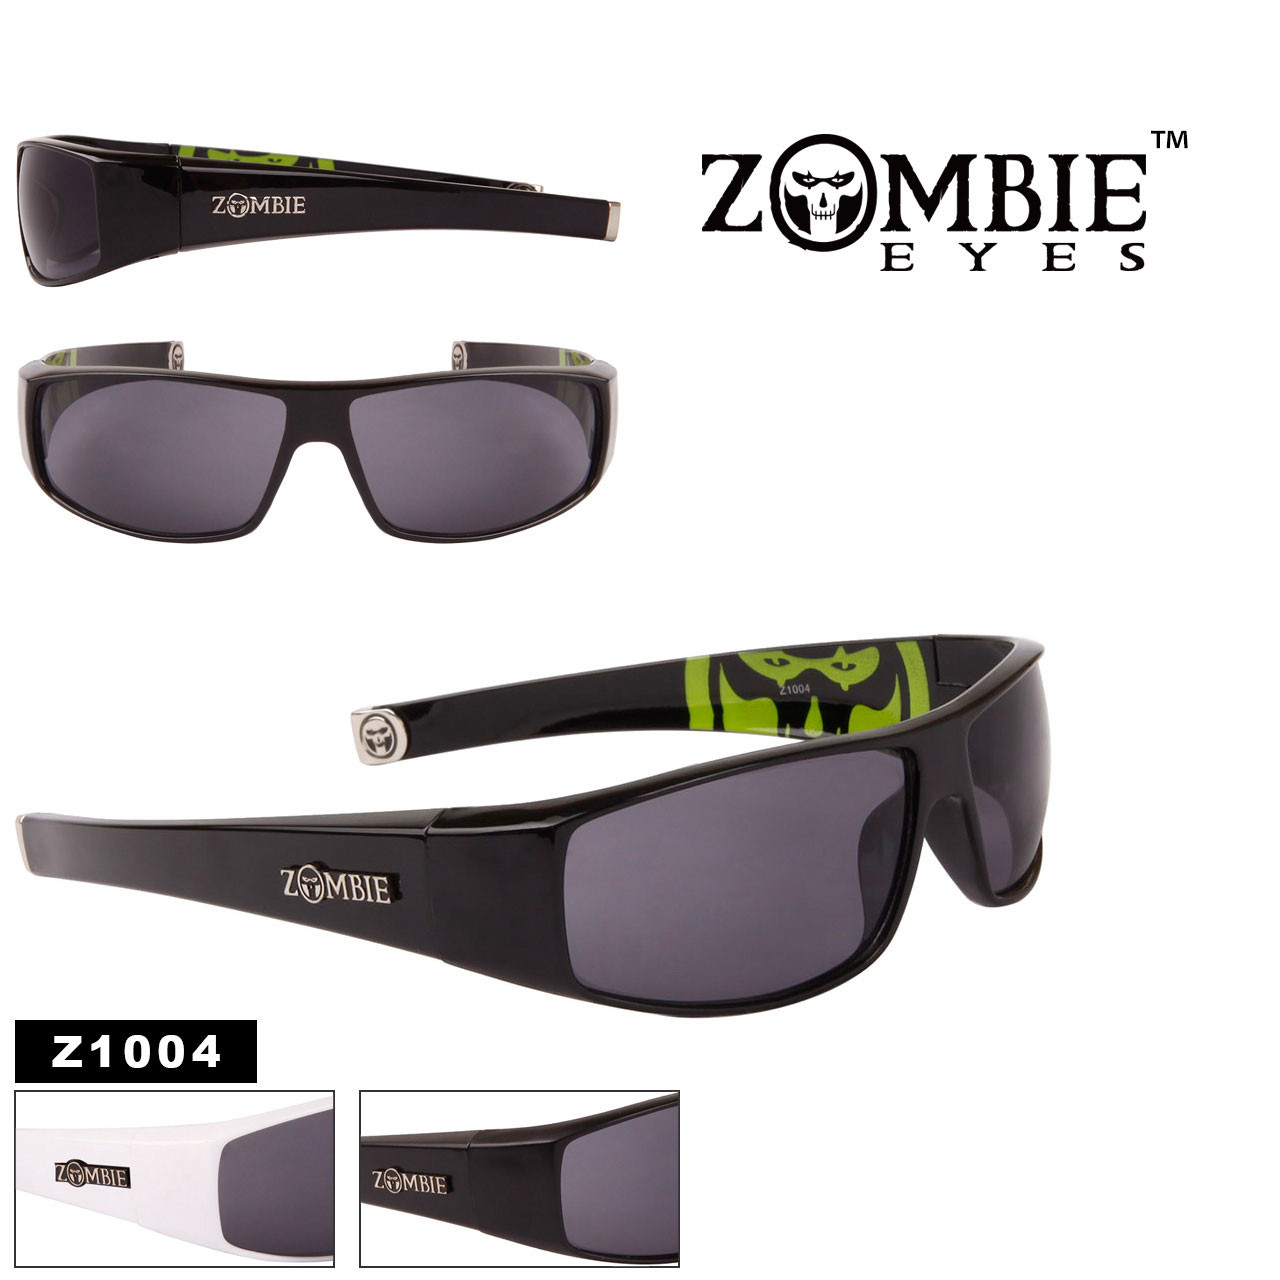 Zombie Eyes™ Men's Designer Sunglasses - Style #Z1004